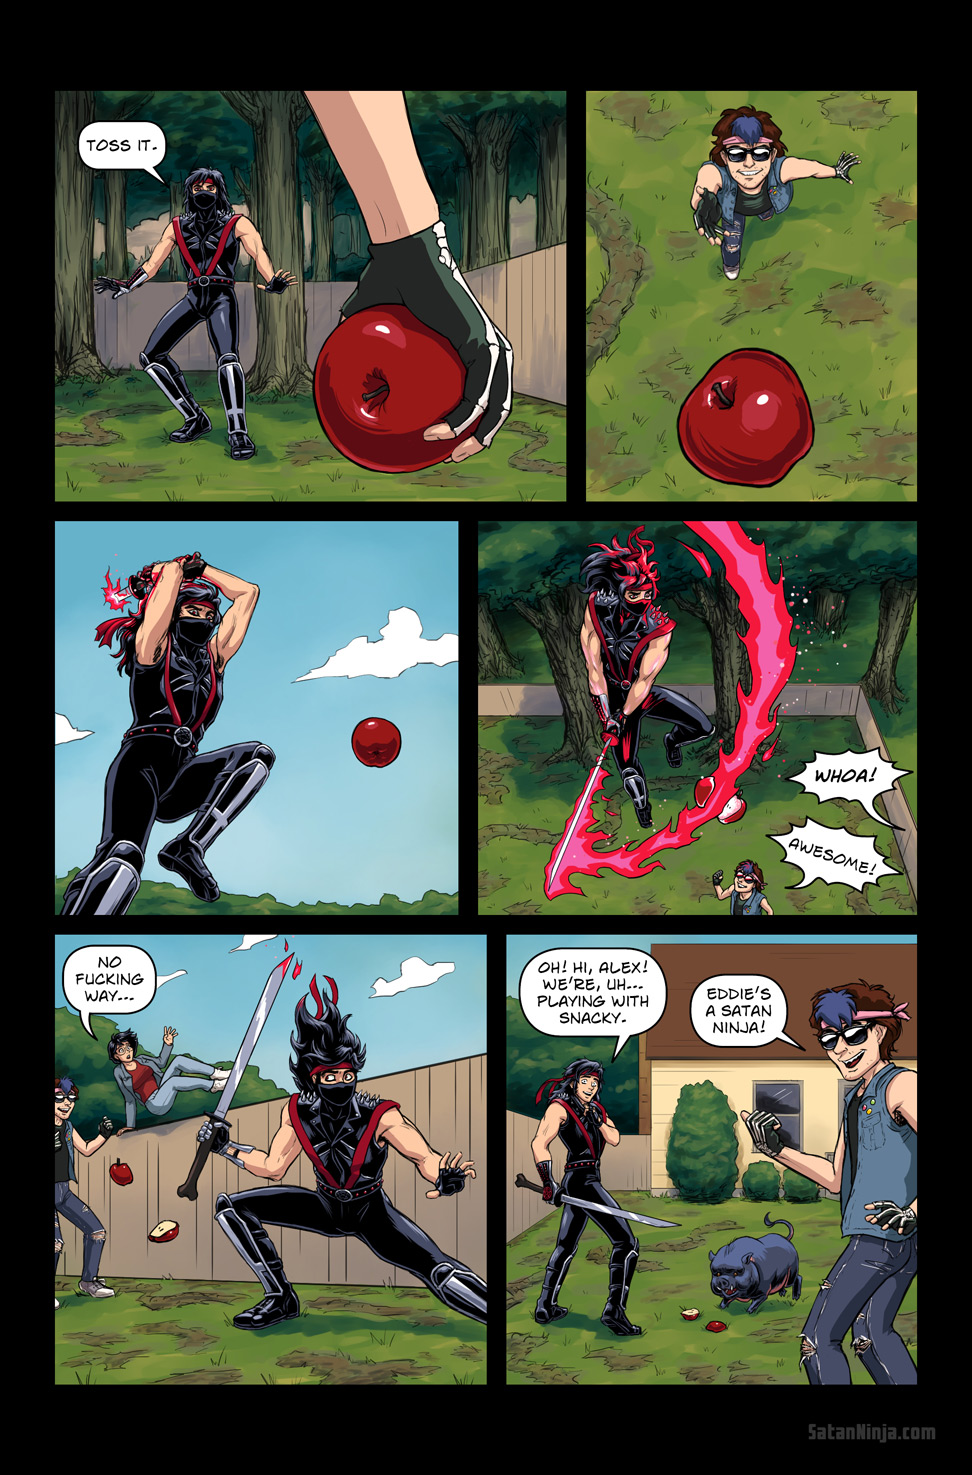 Issue 3, Page 4 - Playing with Snacky